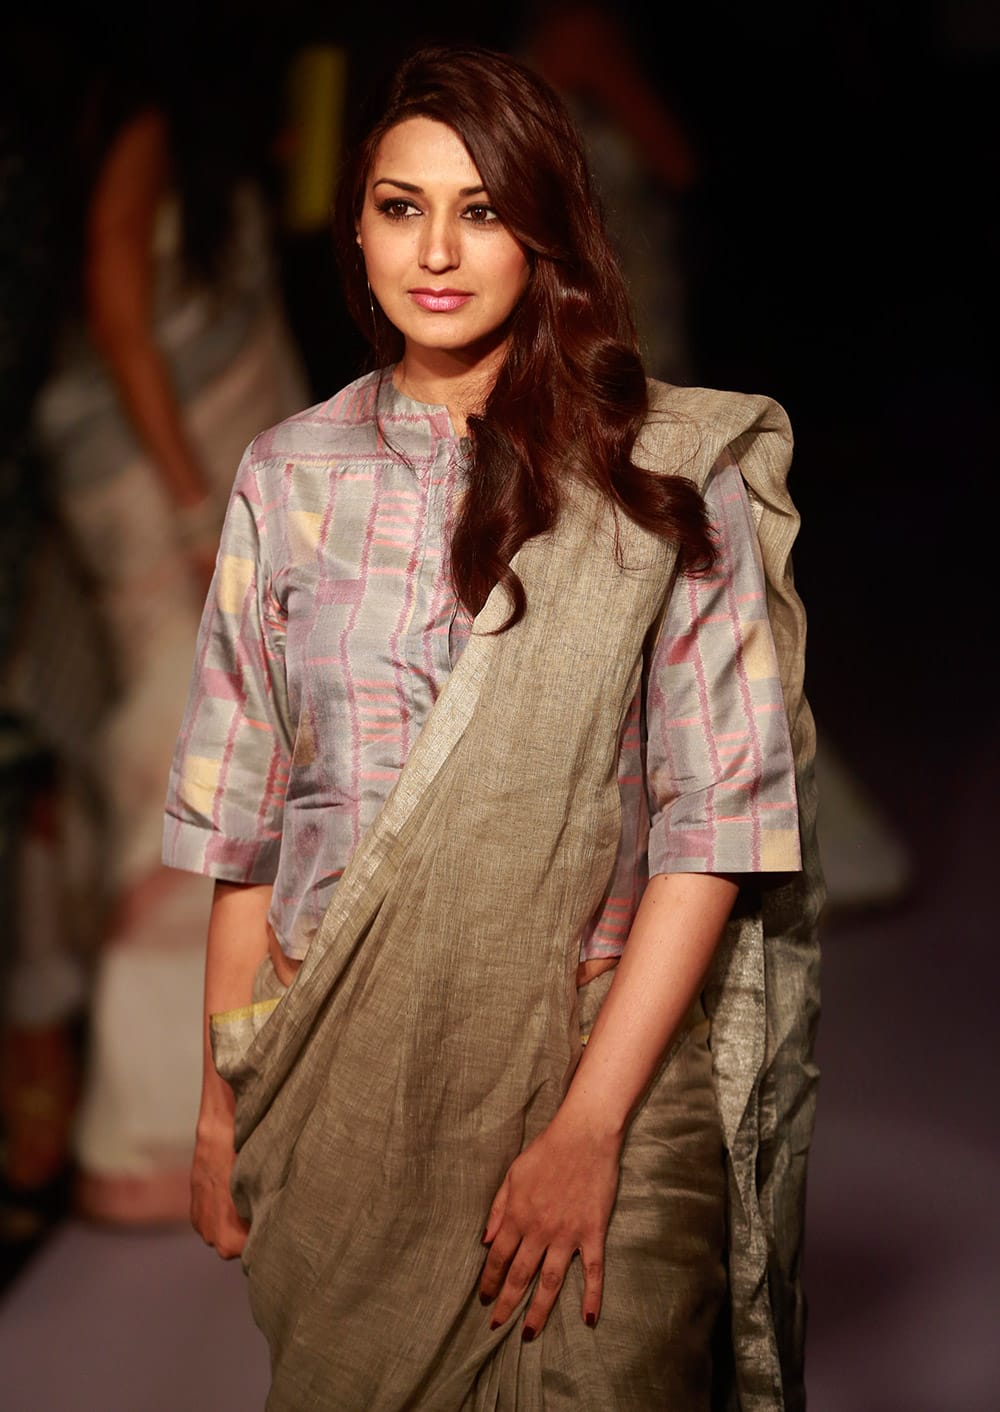 Sonali Bendre poses for photographs during the Lakme Fashion Week Summer Resort 2015 in Mumbai.